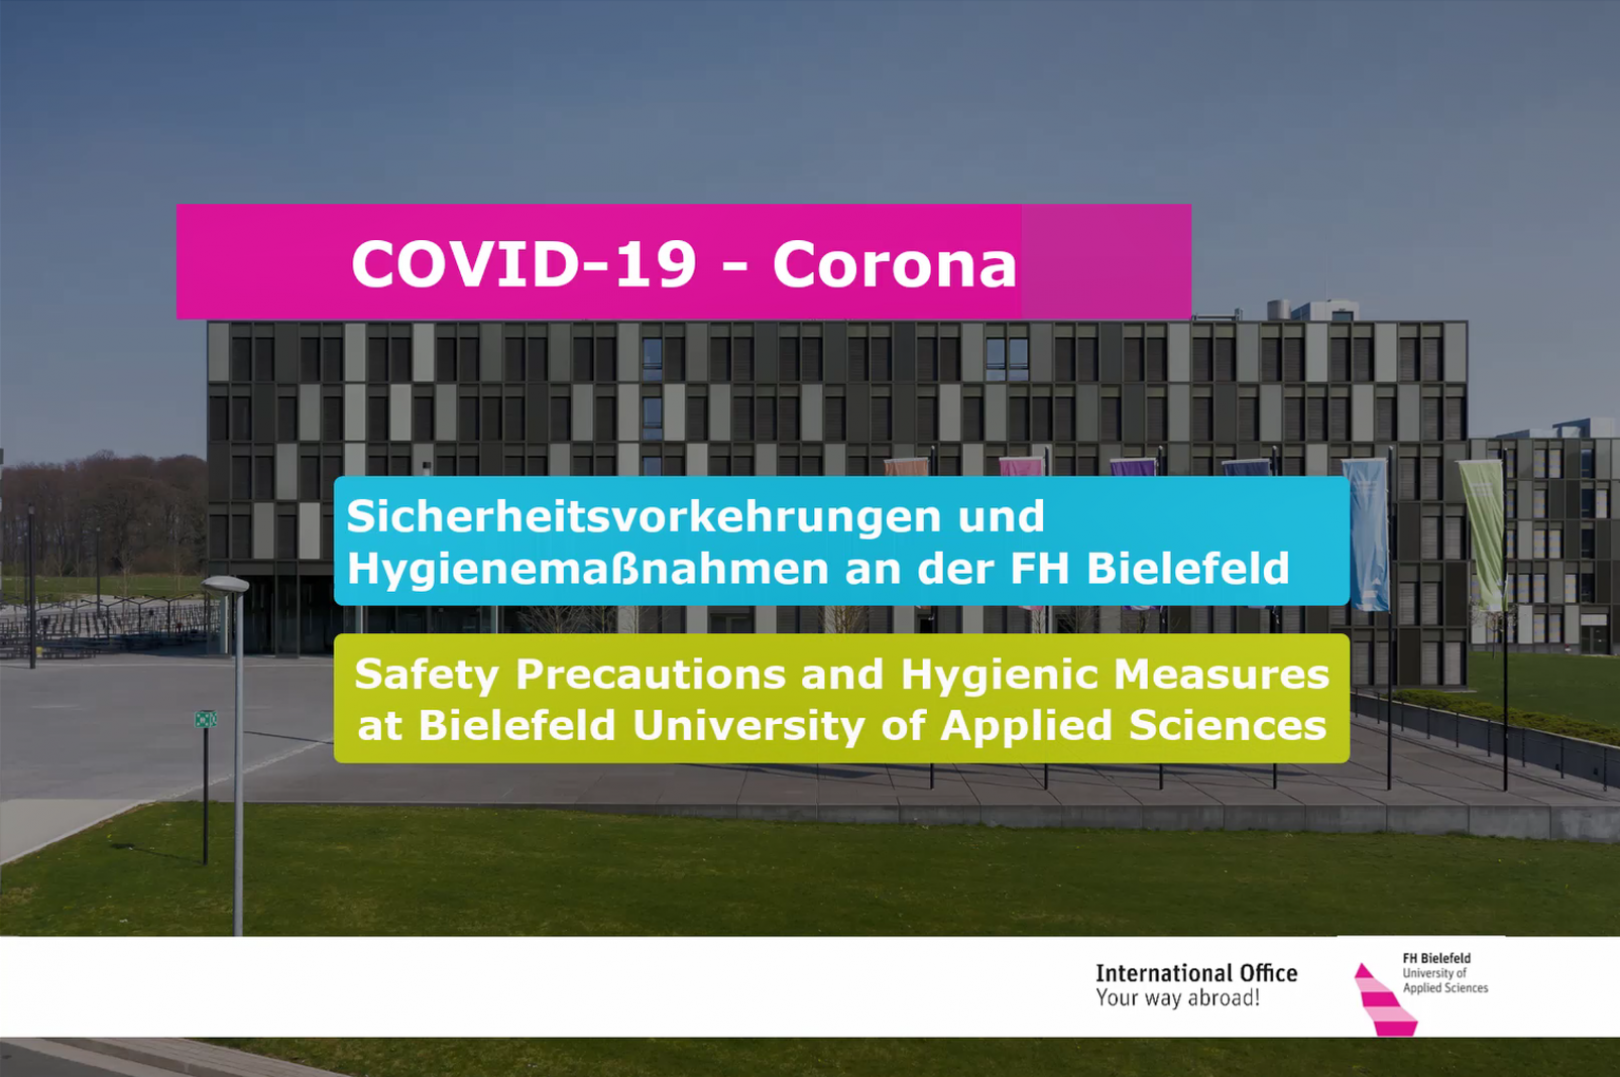 COVID-19 Corona - Safety precautions and hygienic measures at Bielefeld University of Applied Sciences (German & English)